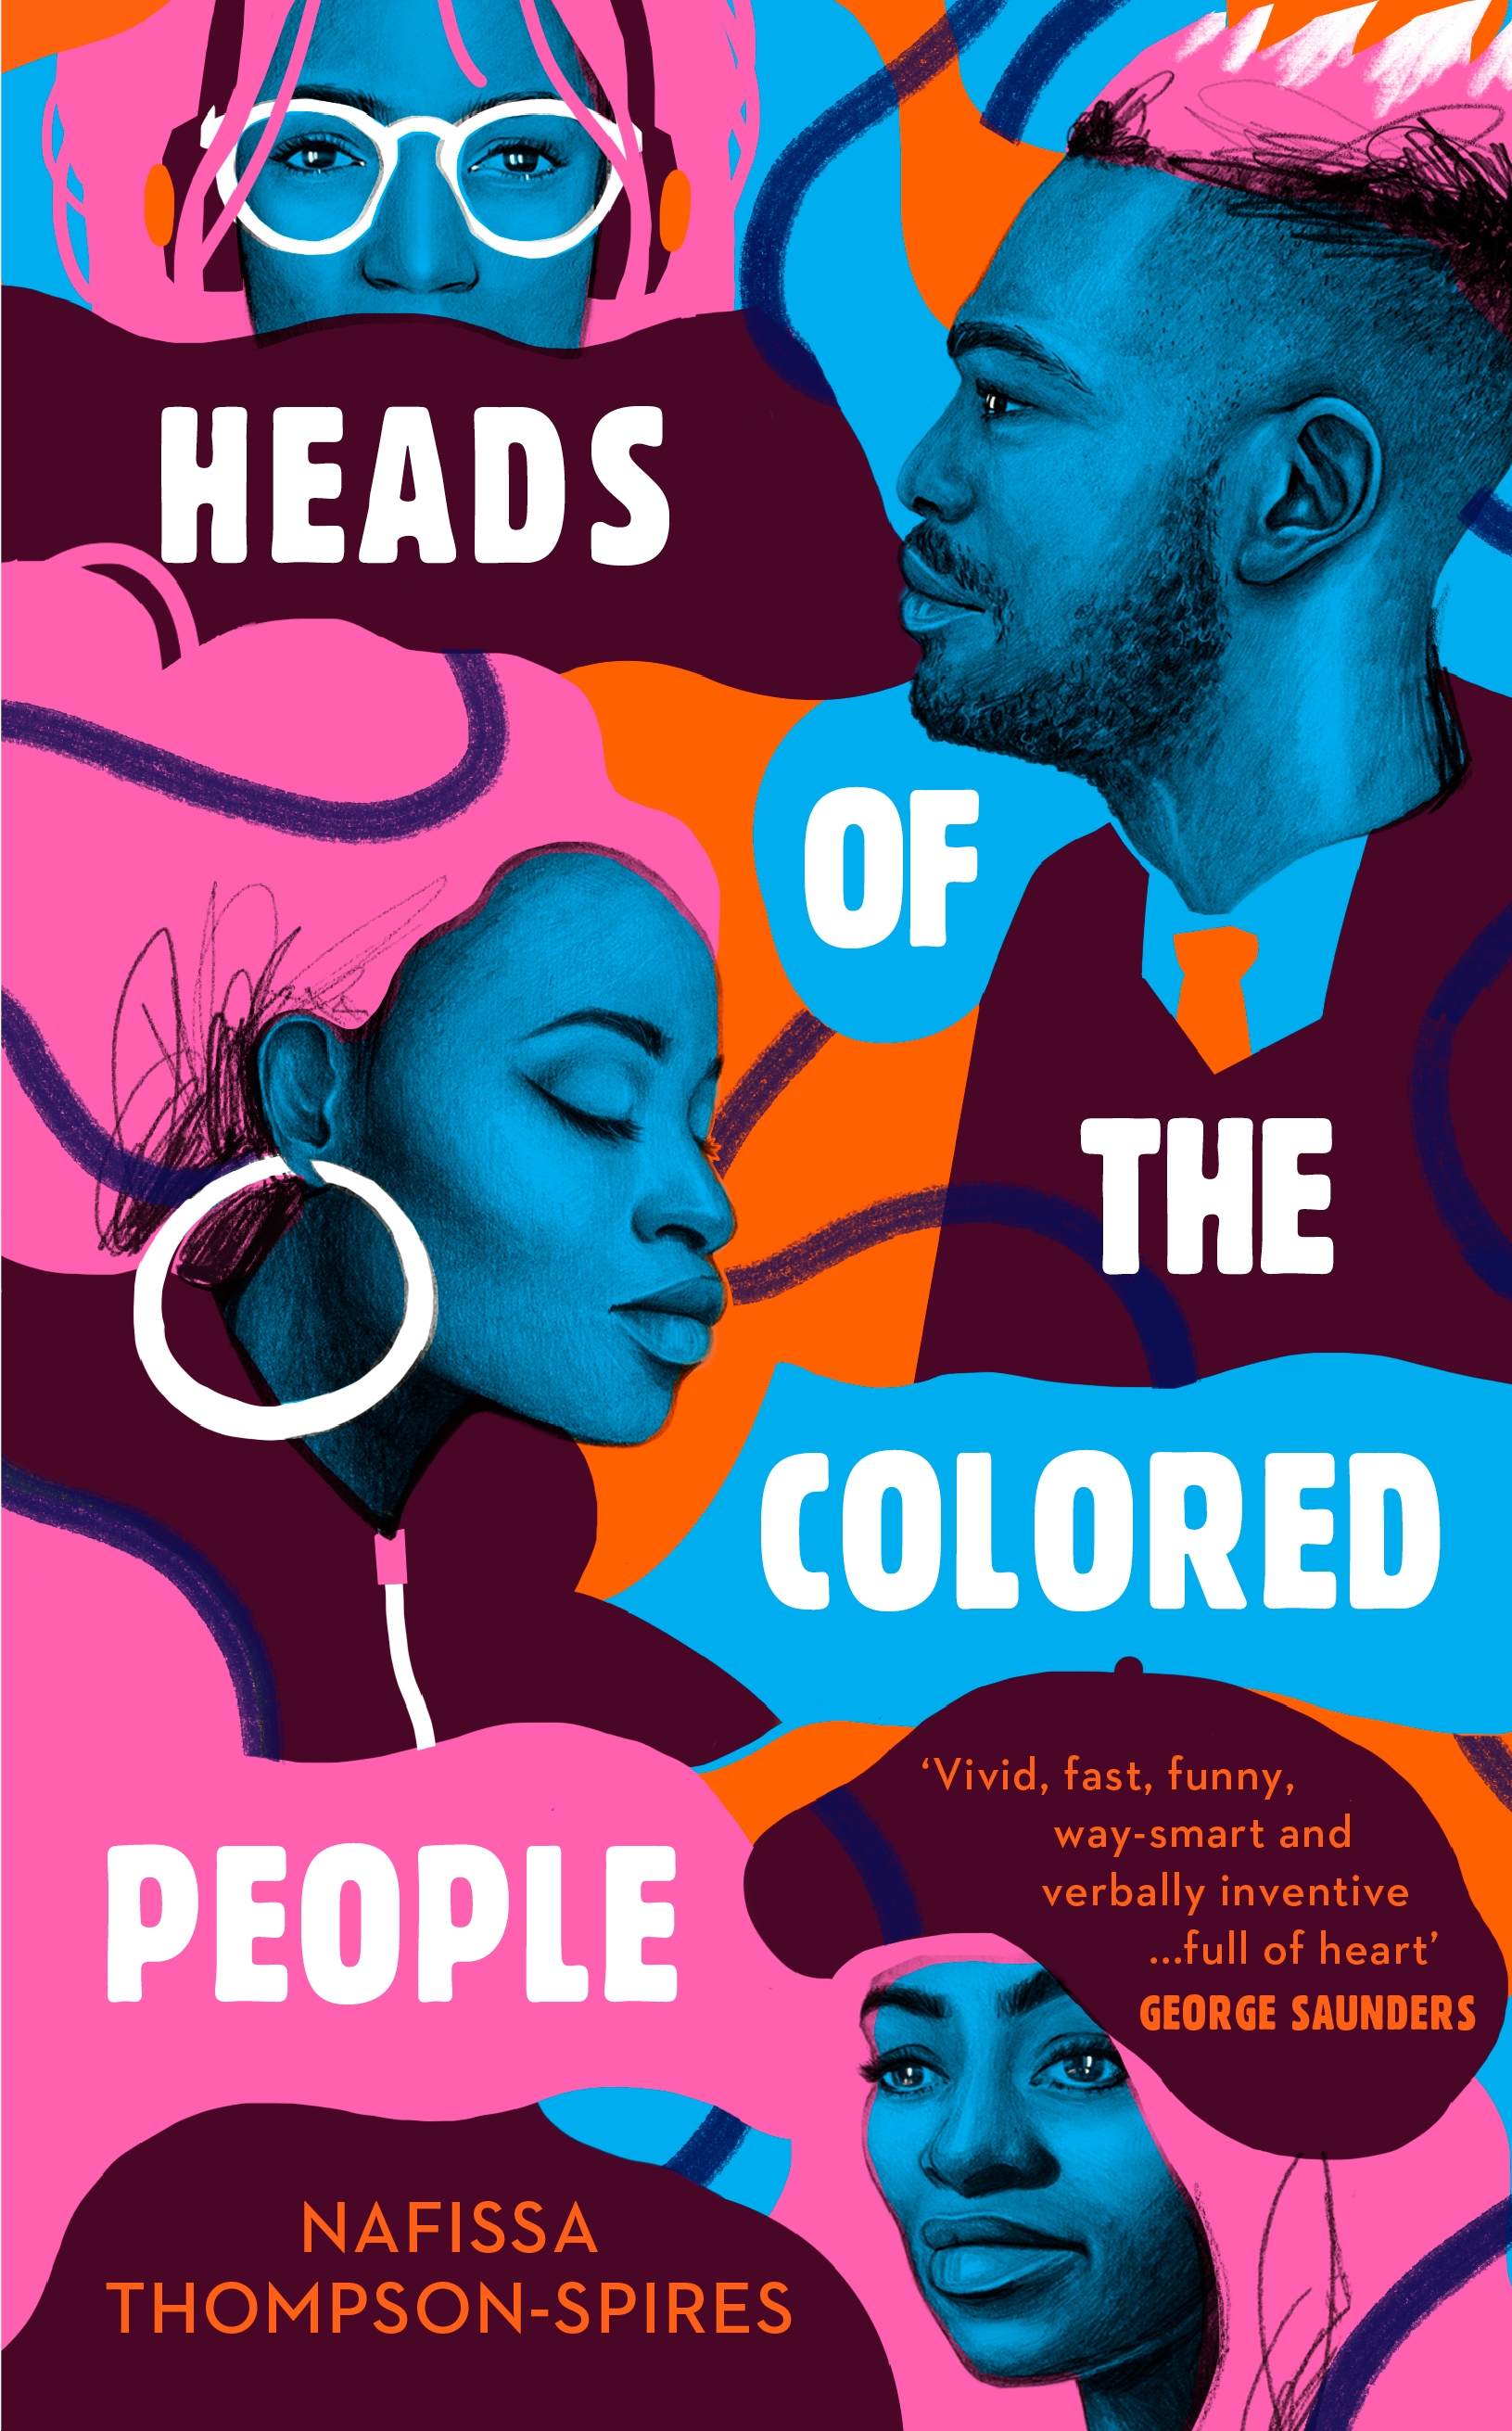 Image result for The Heads of the Colored People by Nafissa Thompson-Spires